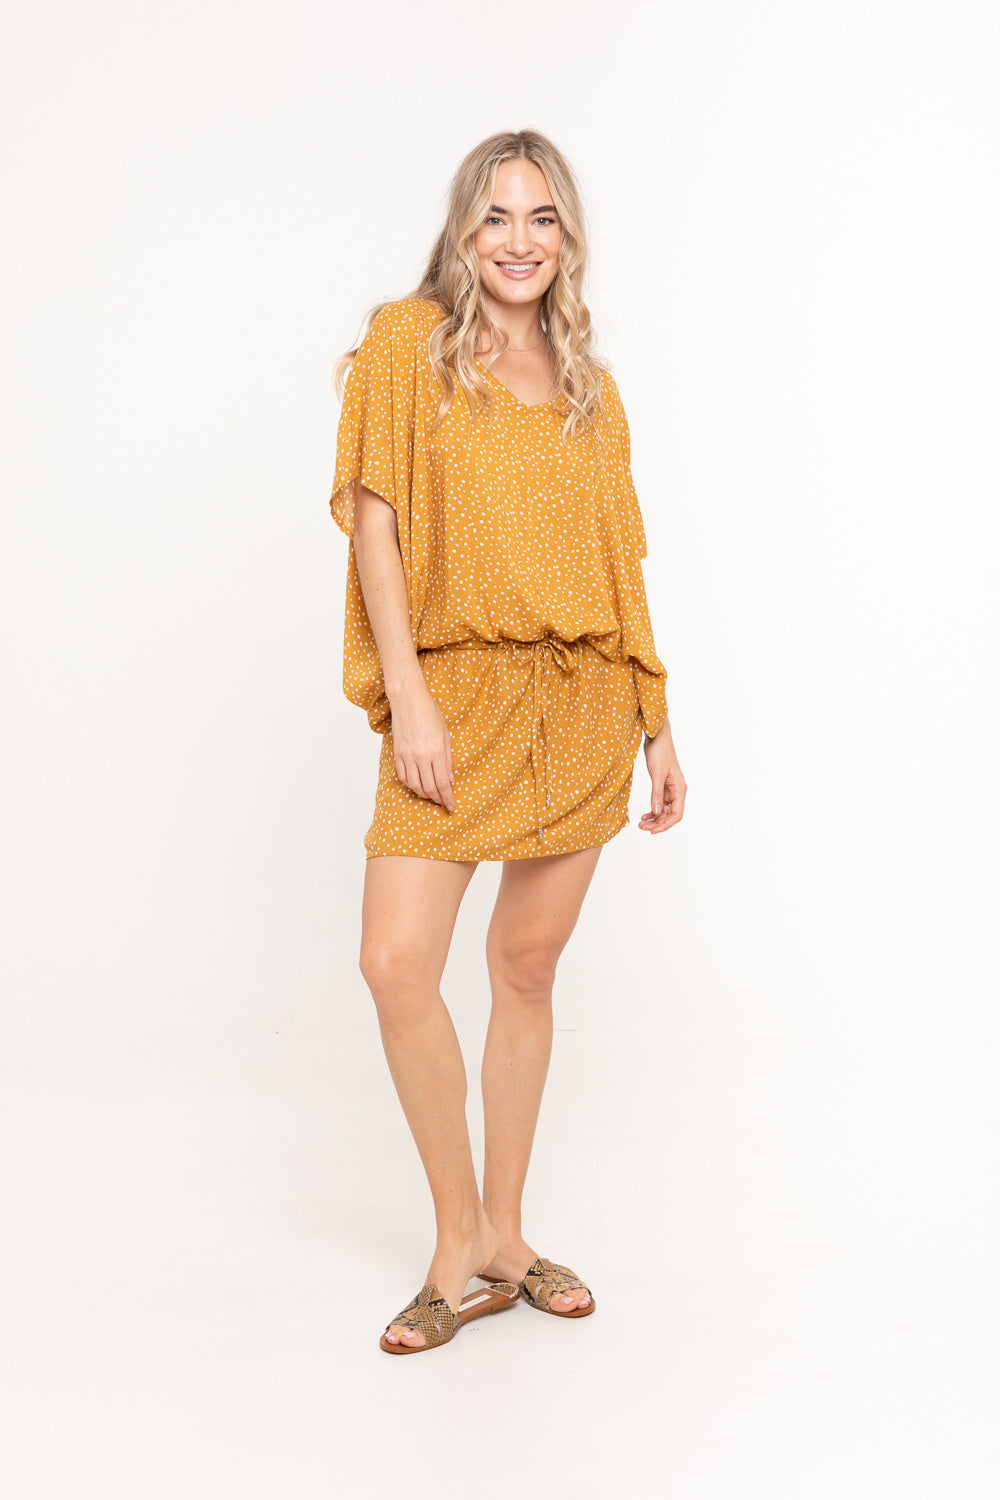 Dress Lexie - Mustard Polka